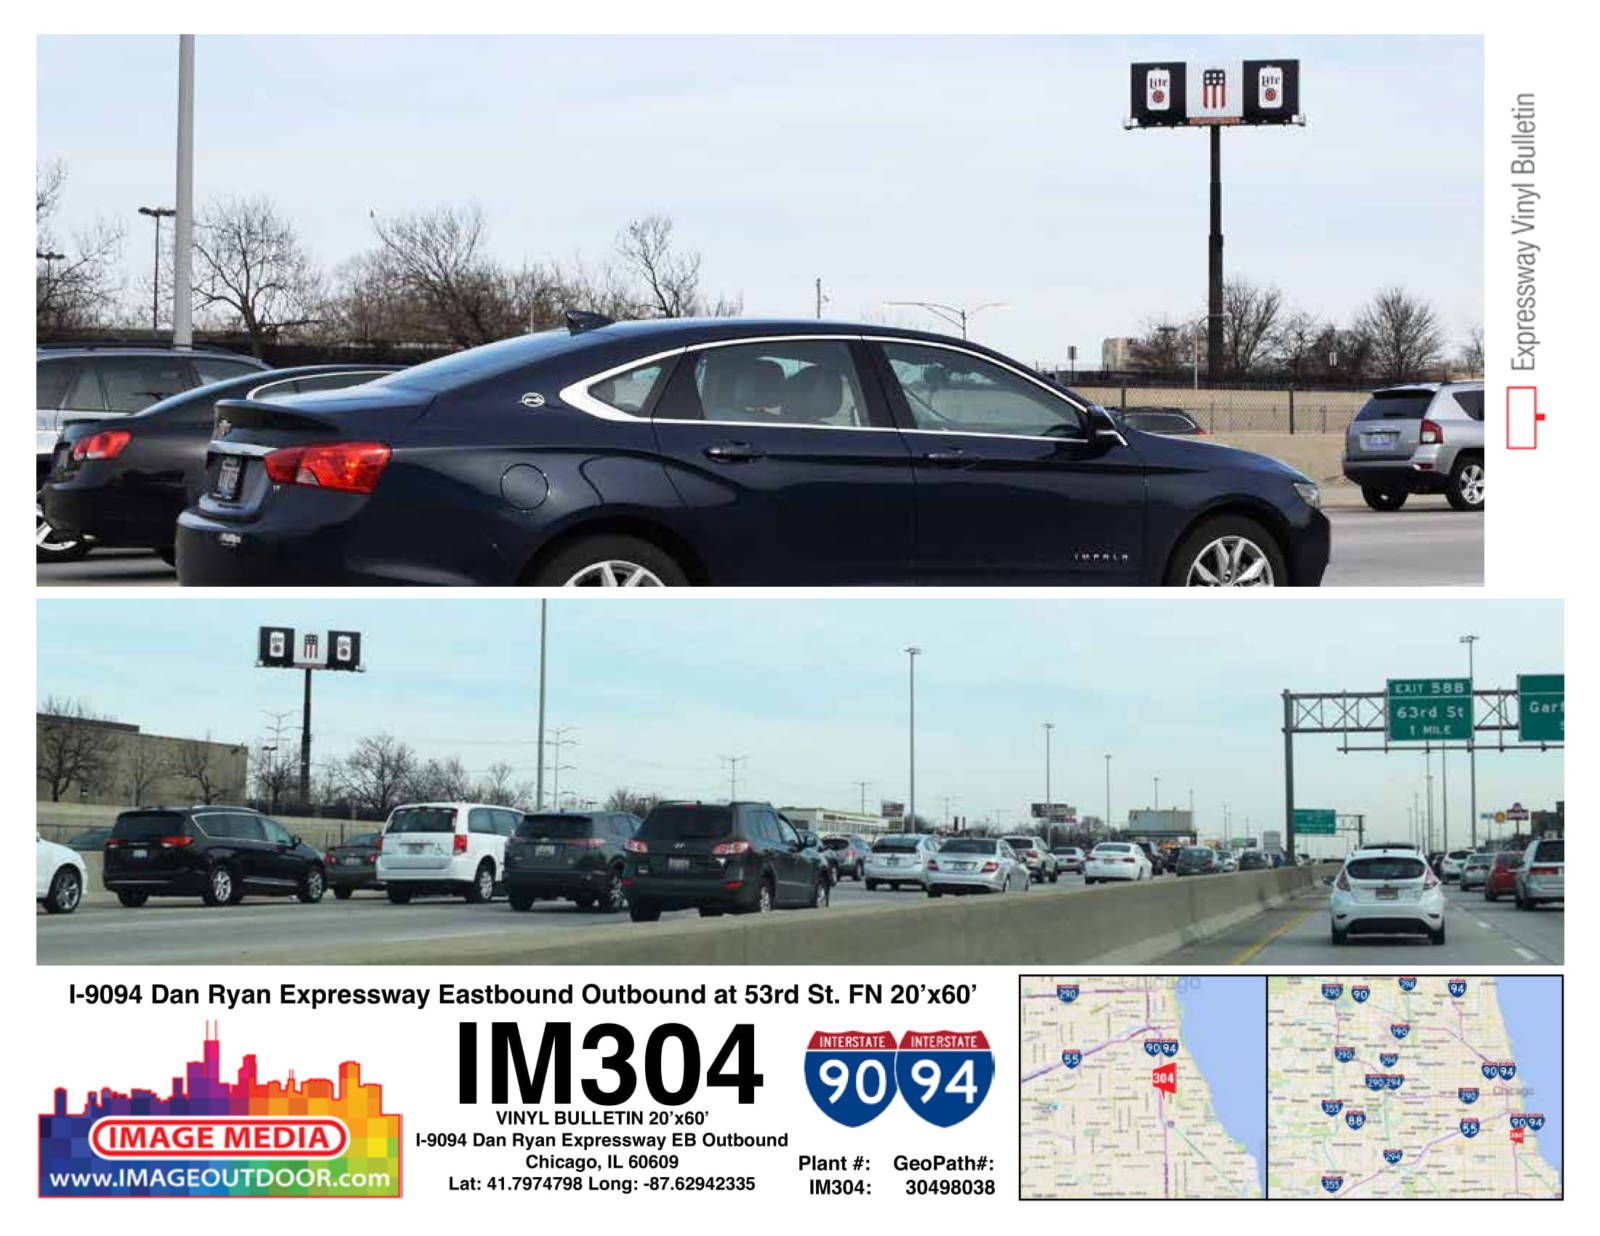 IM304 - bulletin on I90/94 Dan Ryan east/outbound at 53rd Rst.